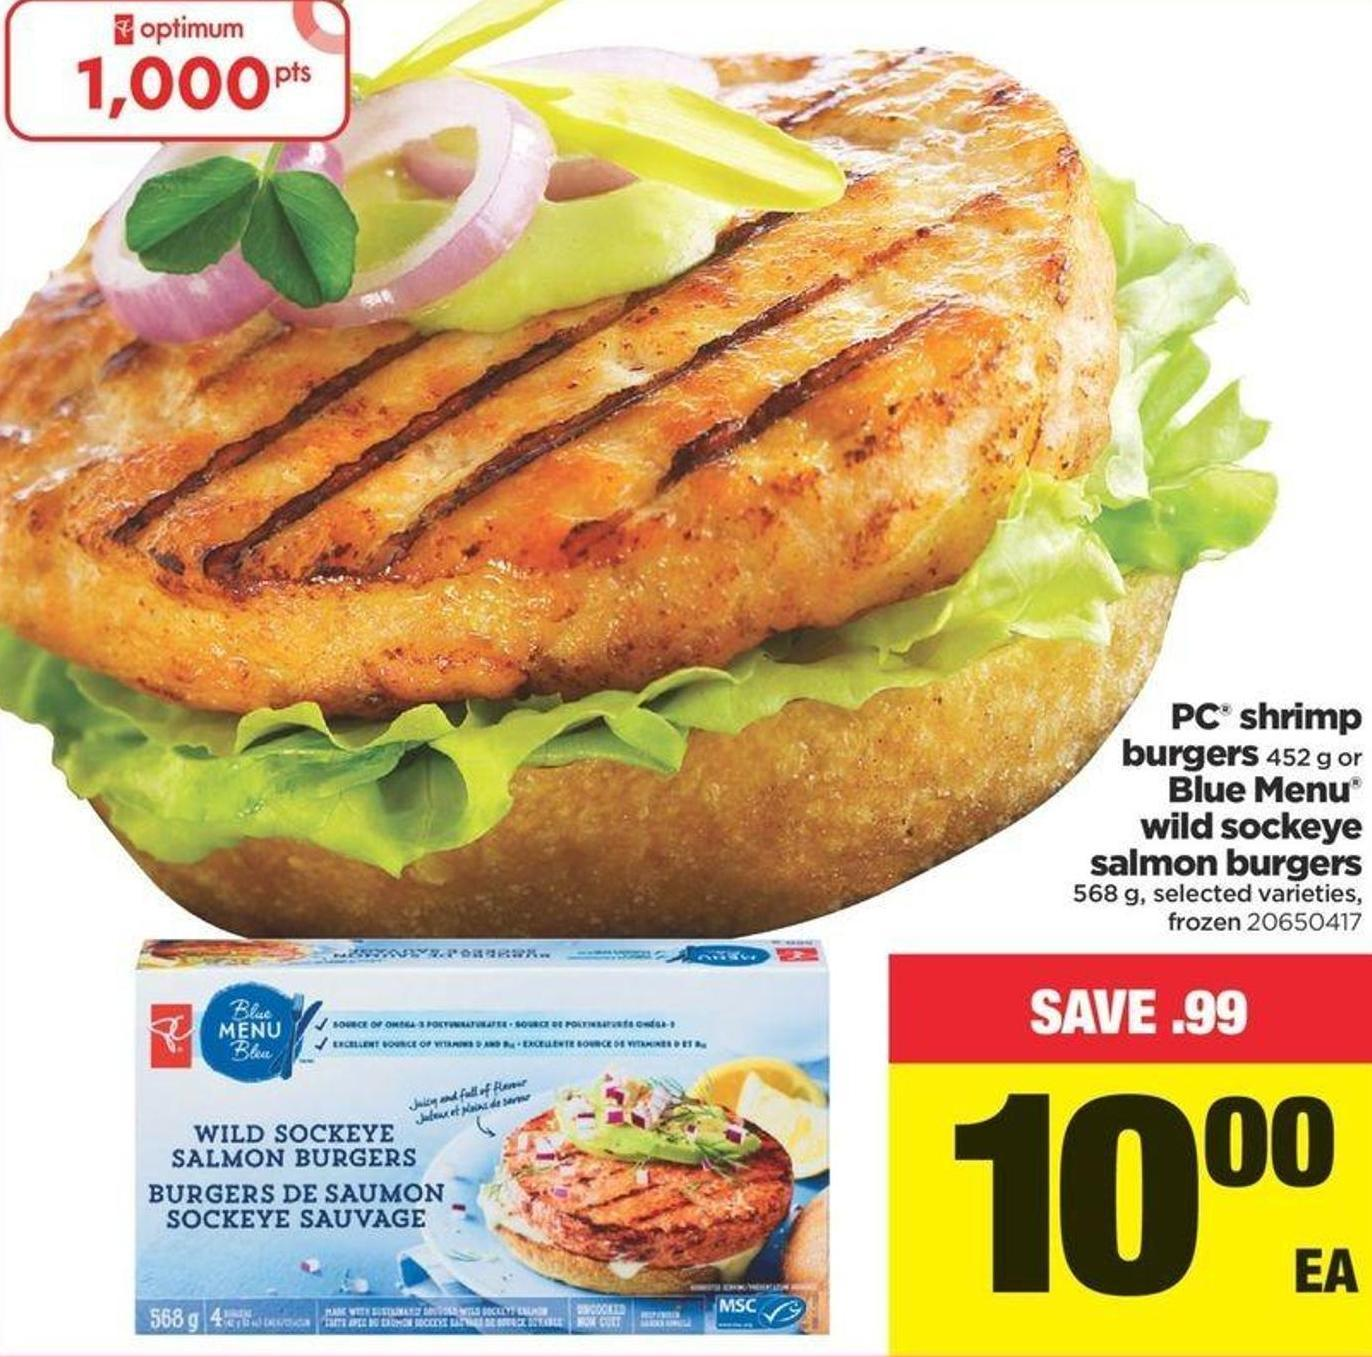 PC Shrimp Burgers - 452 G Or Blue Menu Wild Sockeye Salmon Burgers - 568 G